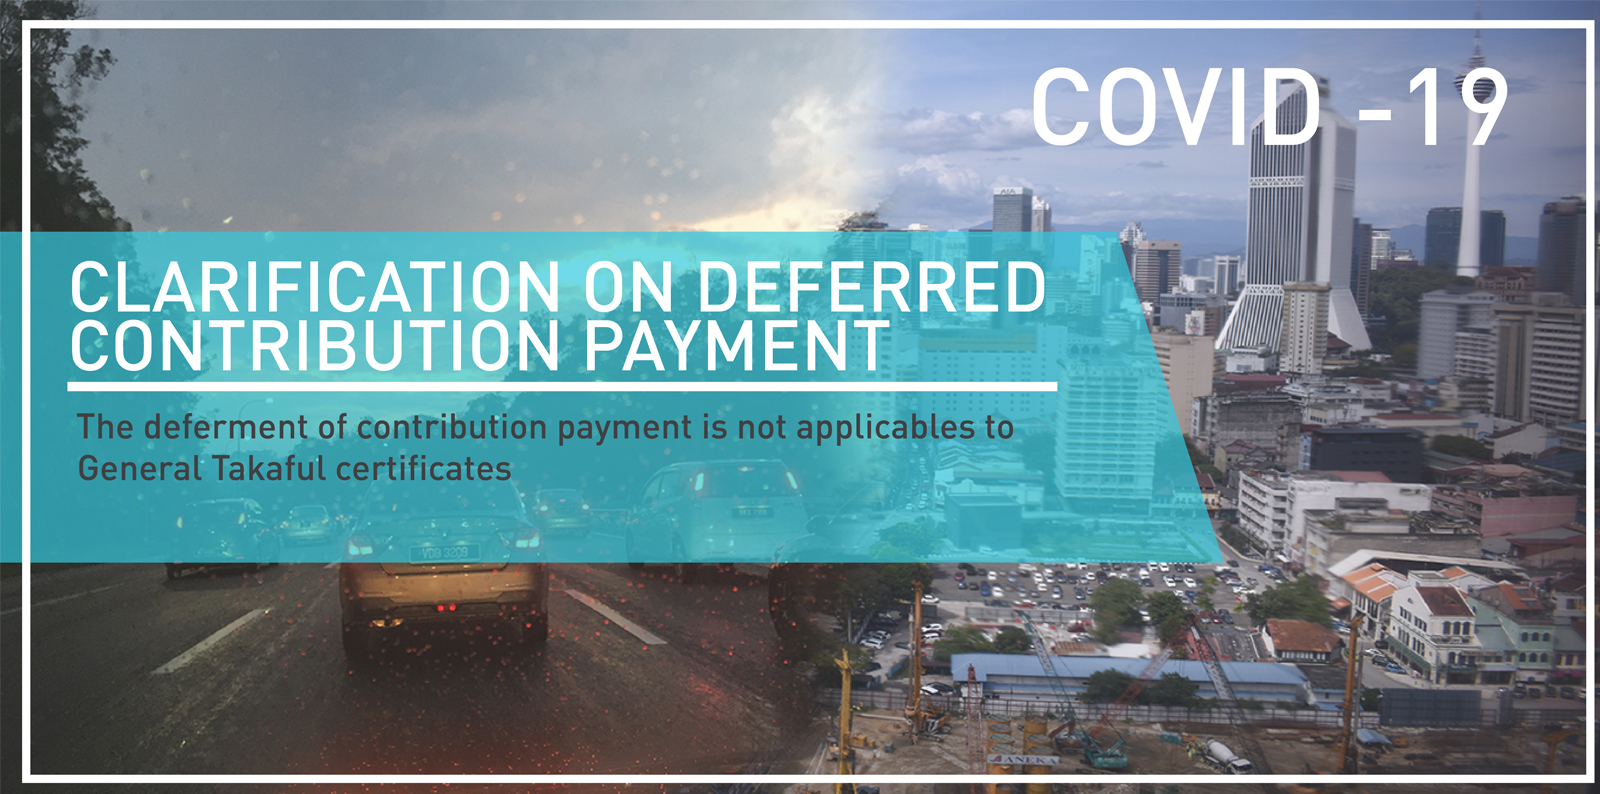 Clarification on deferred contribution payment